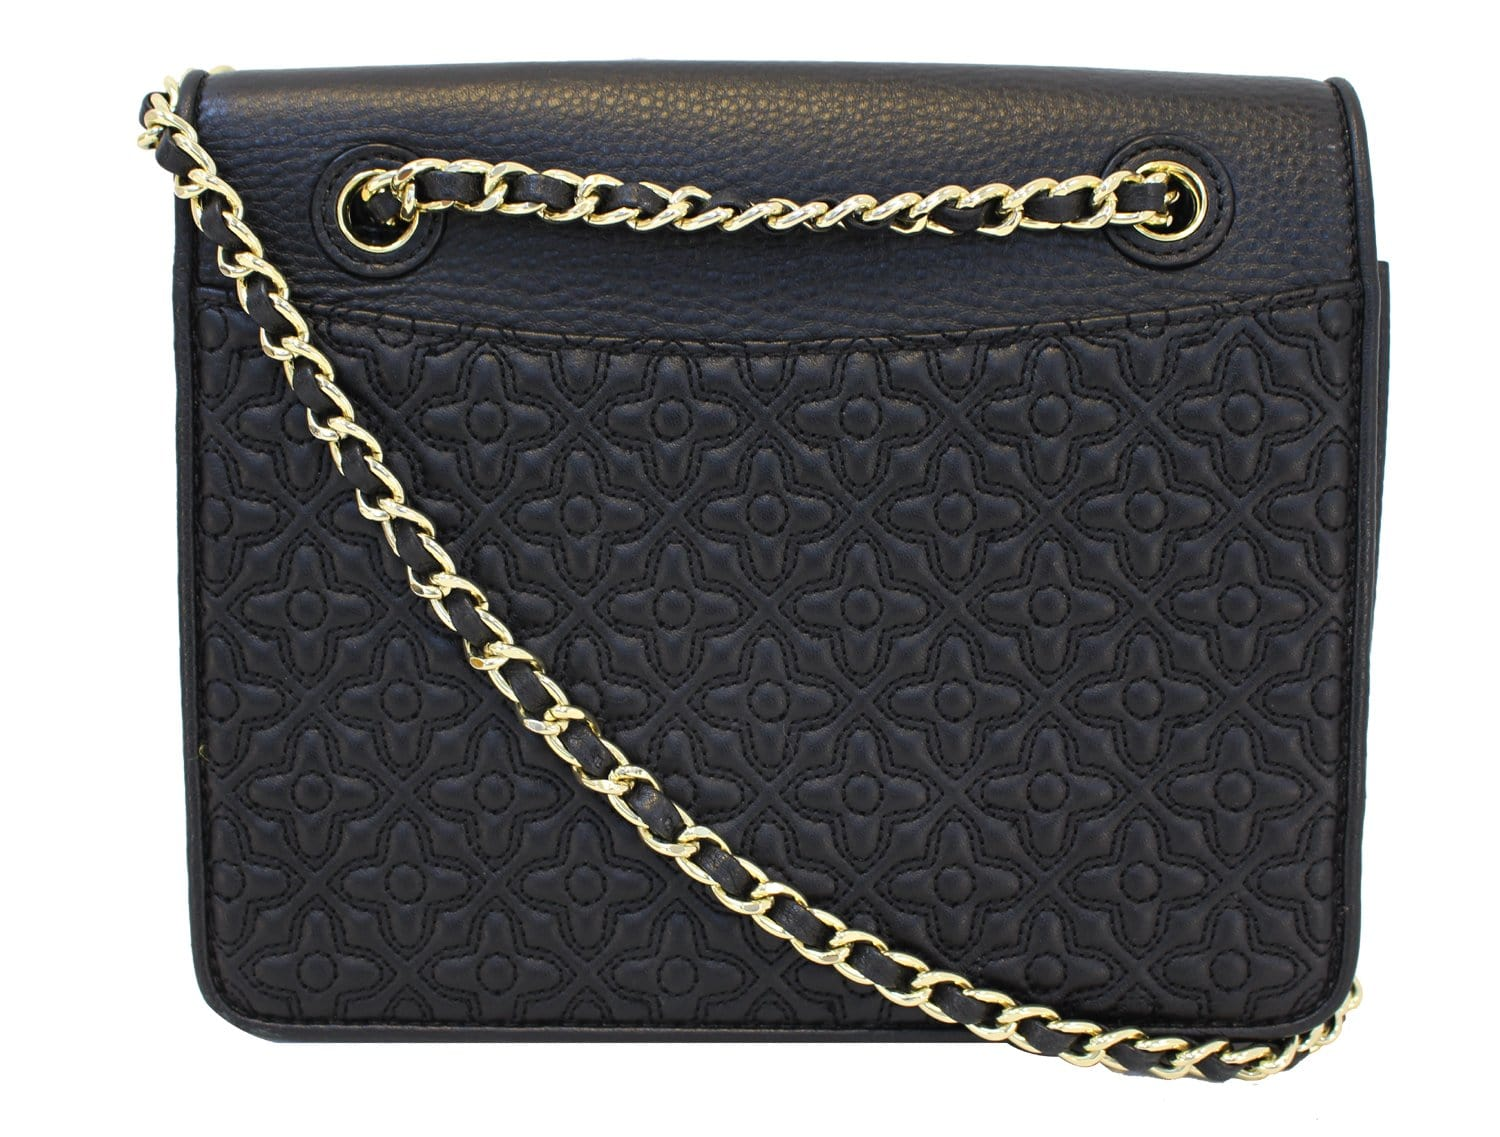 Authentic Tory Burch Bryant Quilted Leather Black